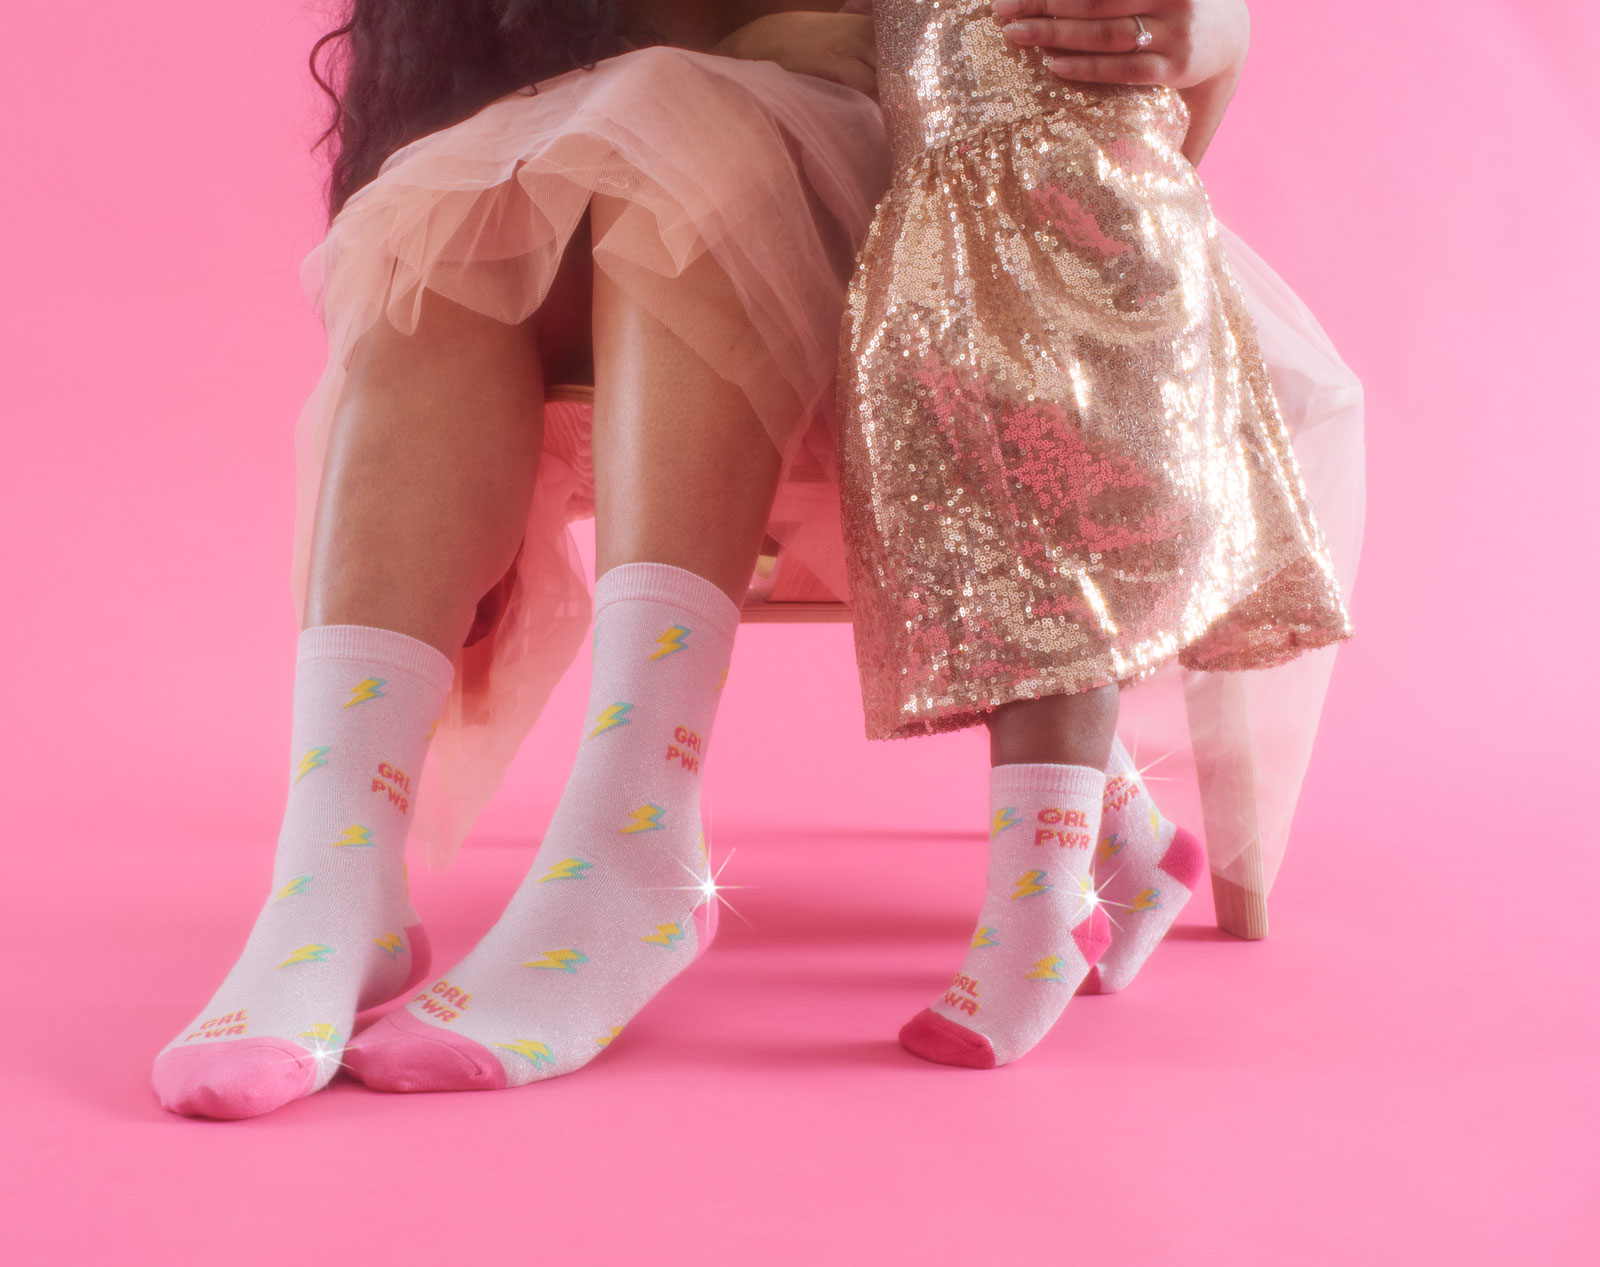 shimmering pink socks that summon your girl power